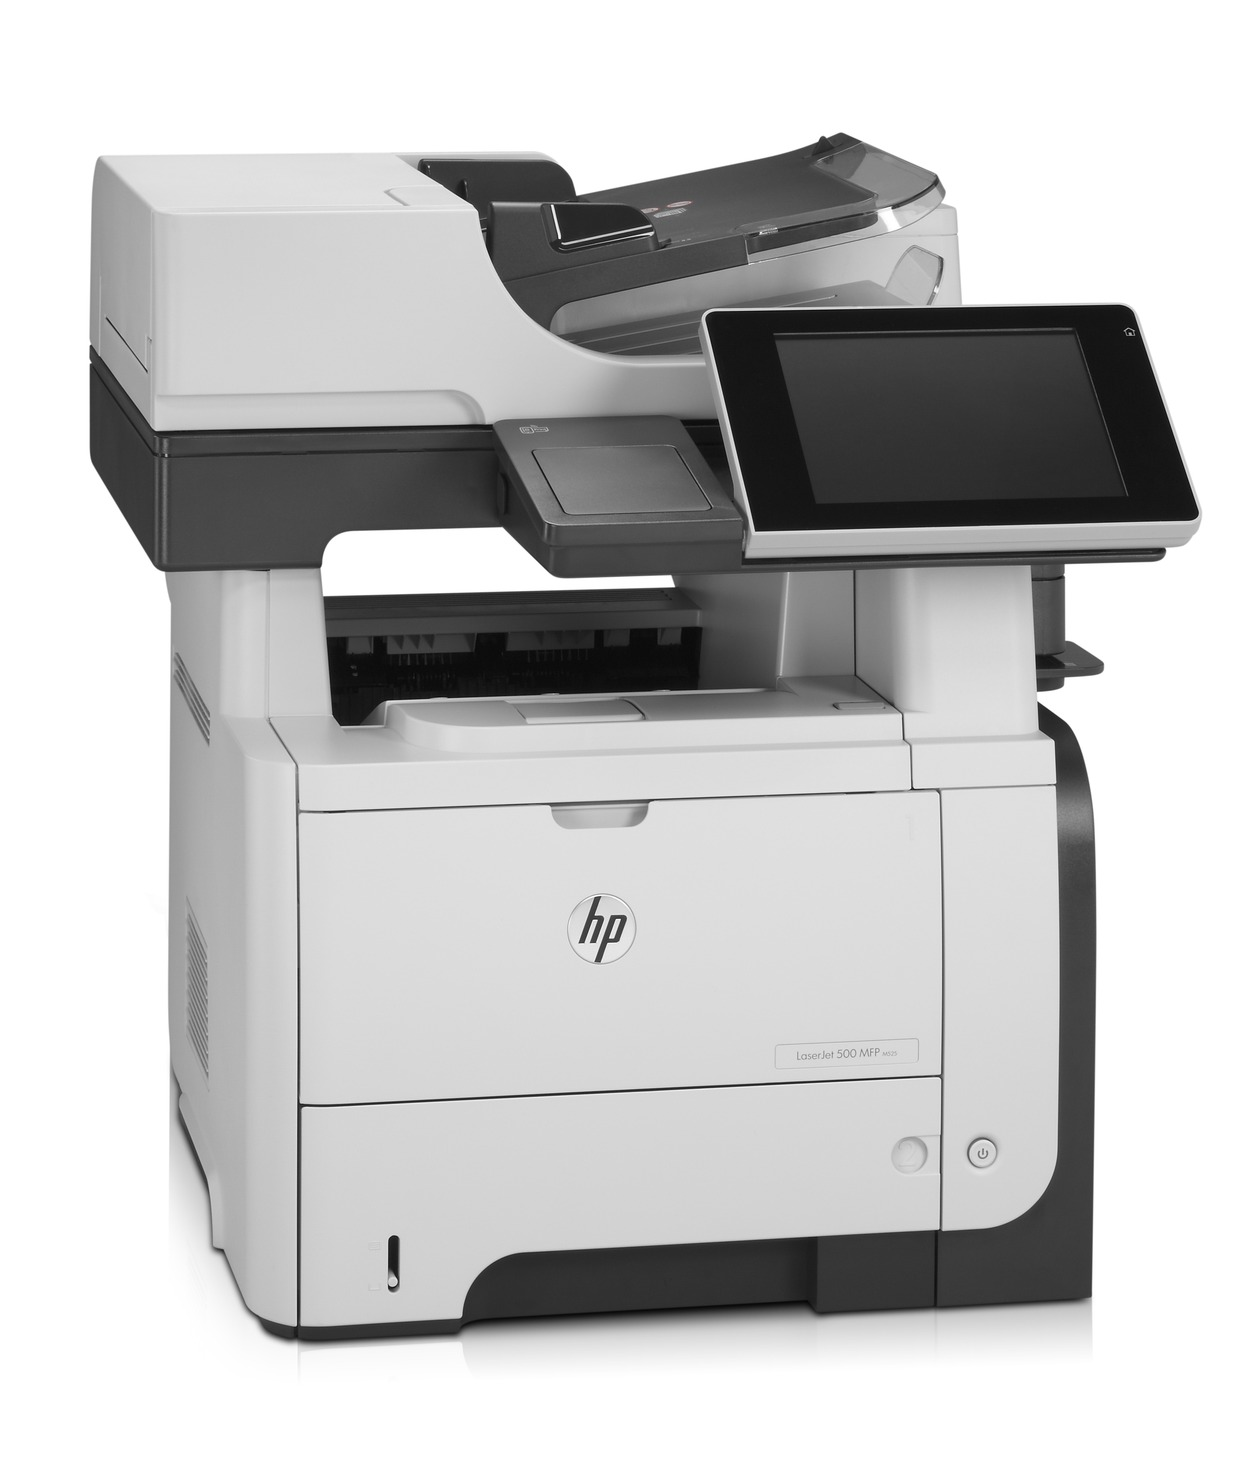 About the HP LaserJet Enterprise 500 MFP M525f